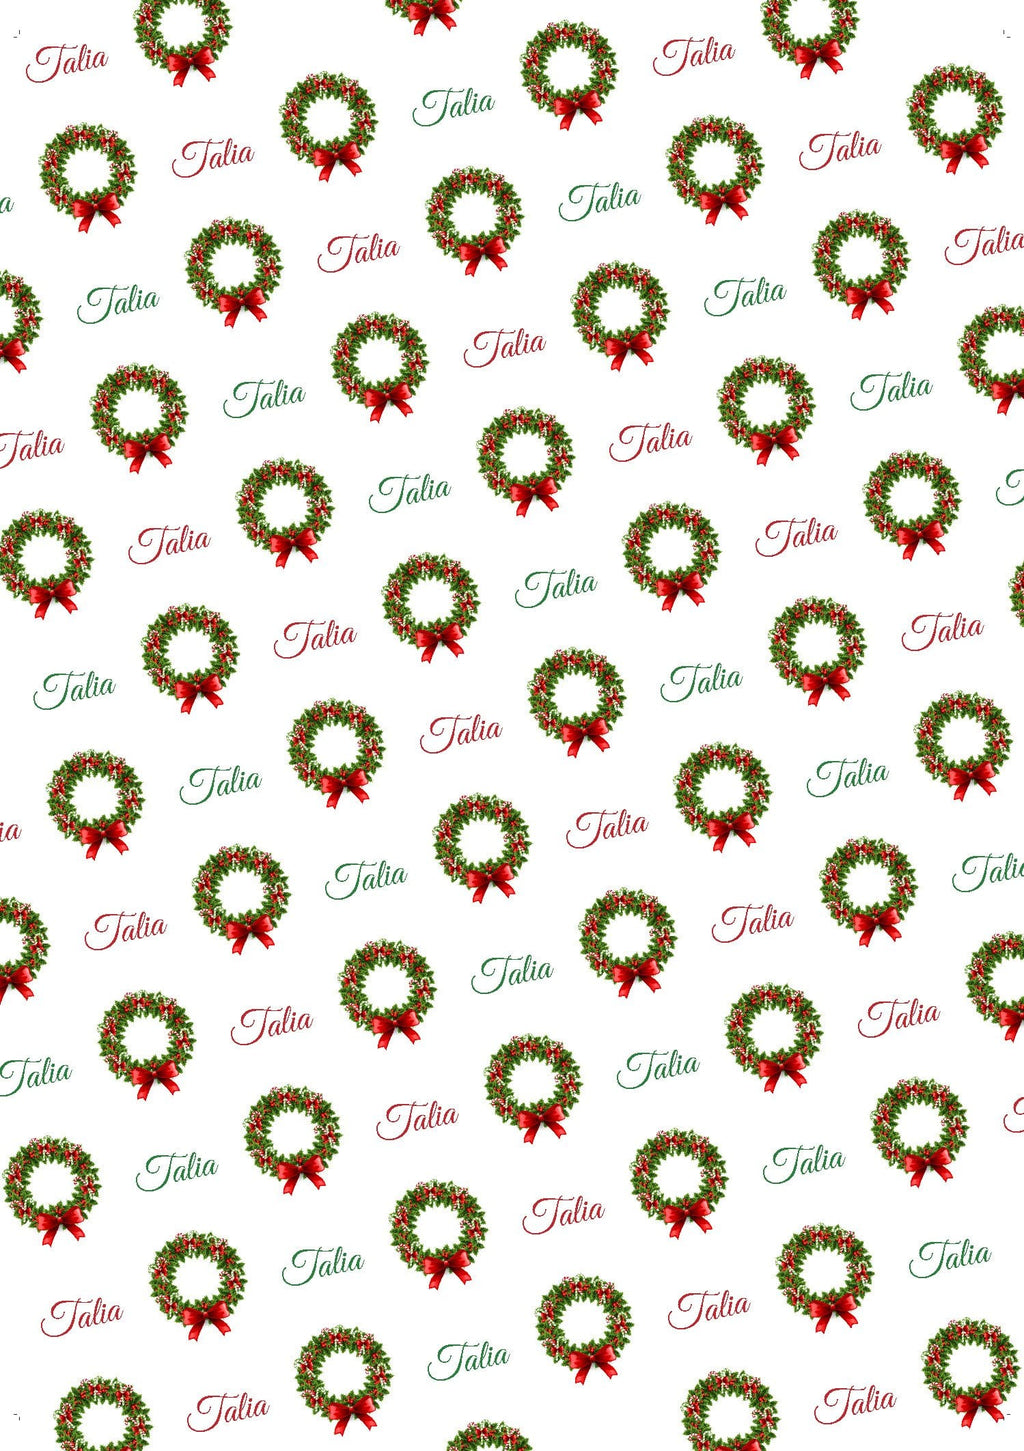 Christmas Wreath Personalized Christmas Tissue Paper - Potter's Printing